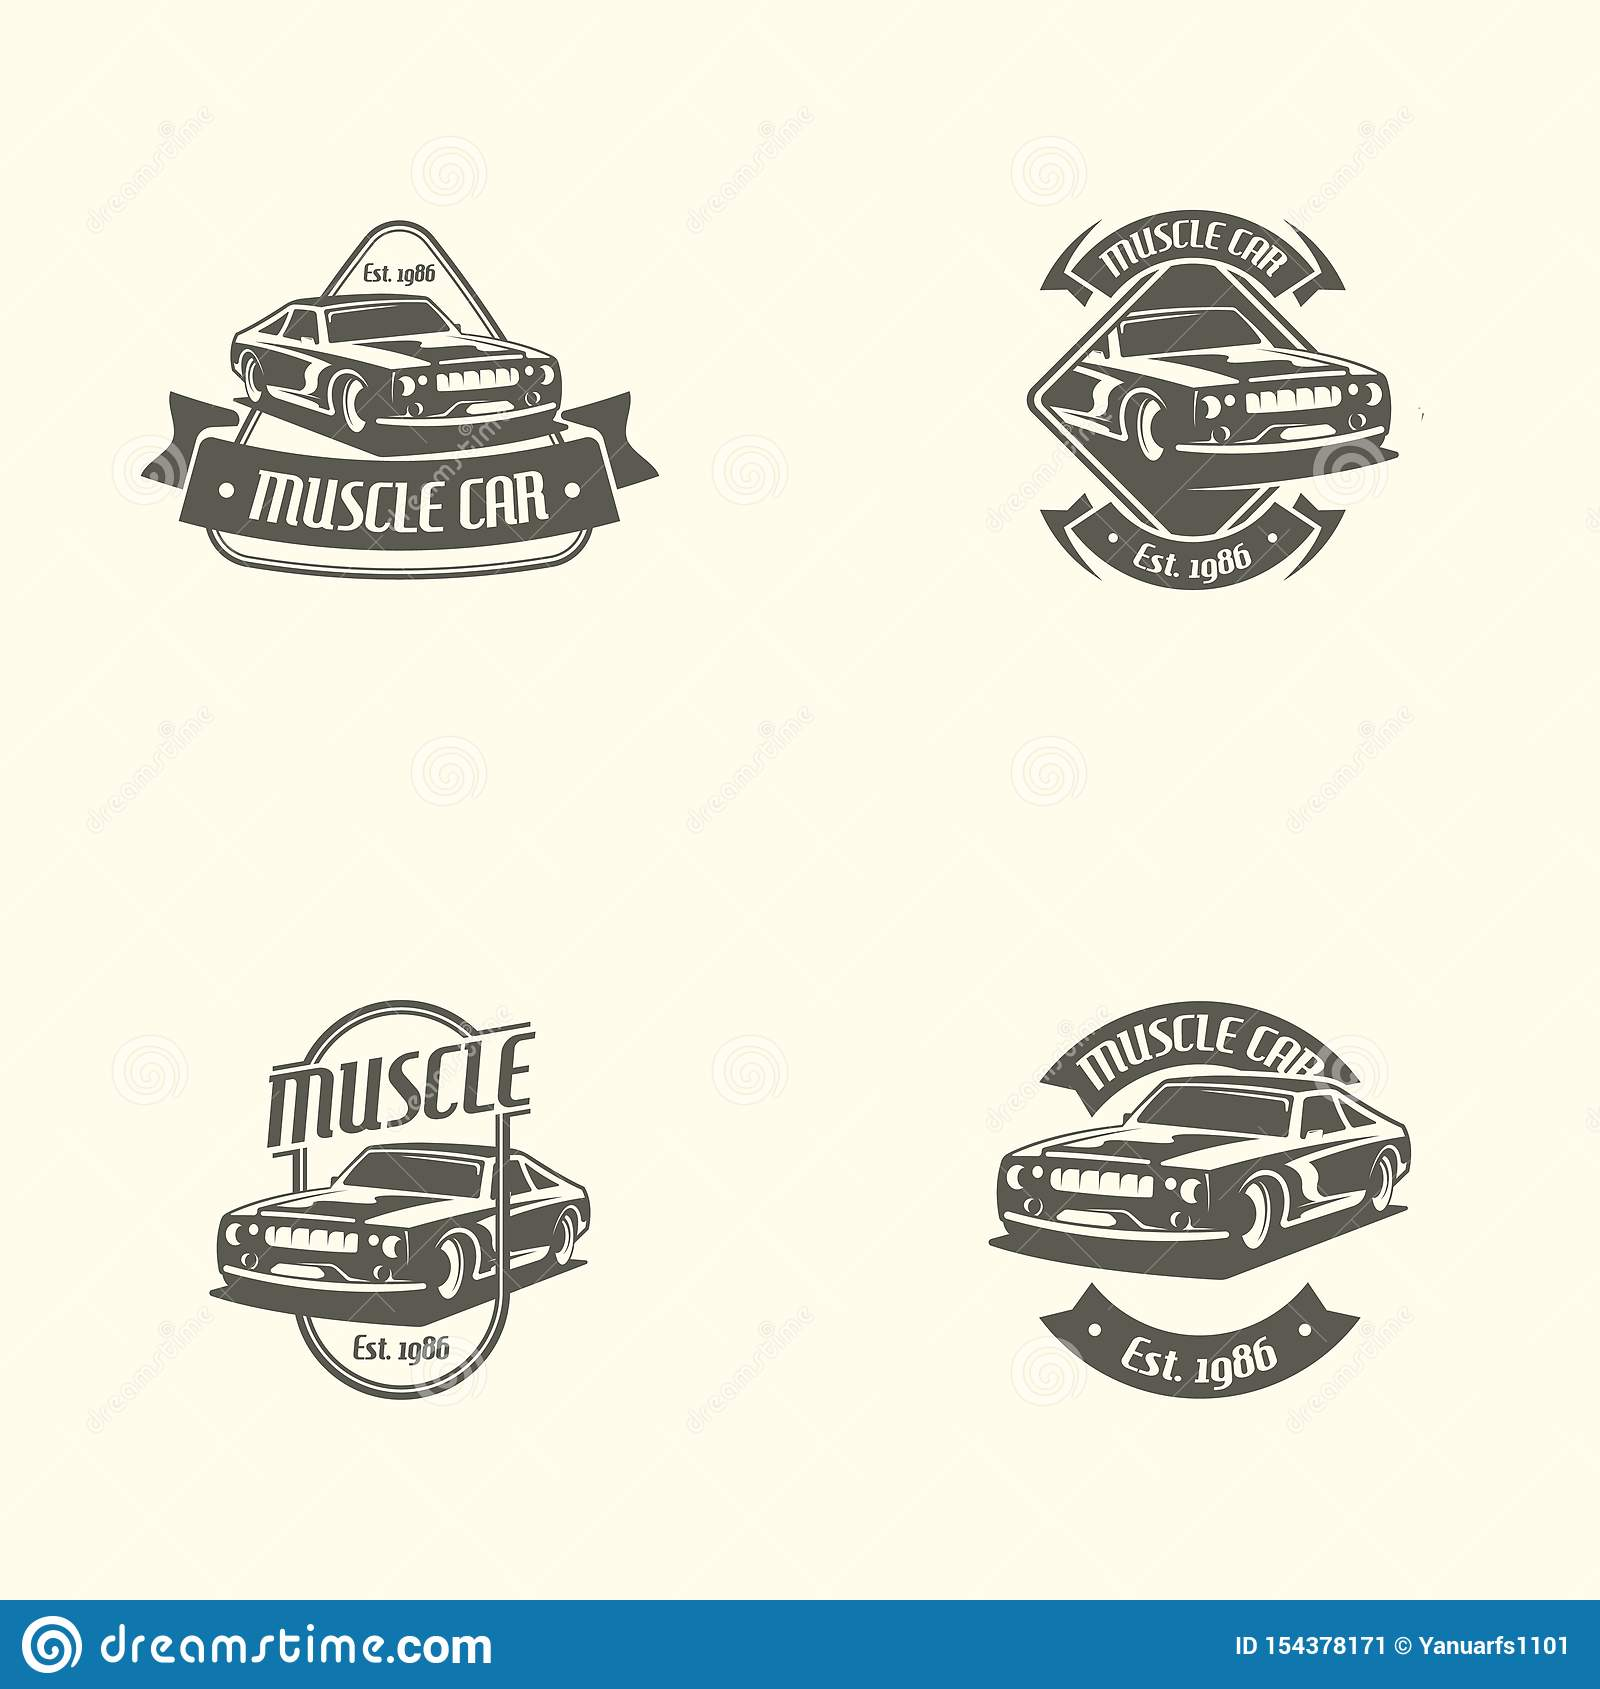 Muscle car logo template in retro style. Retro car logo vector